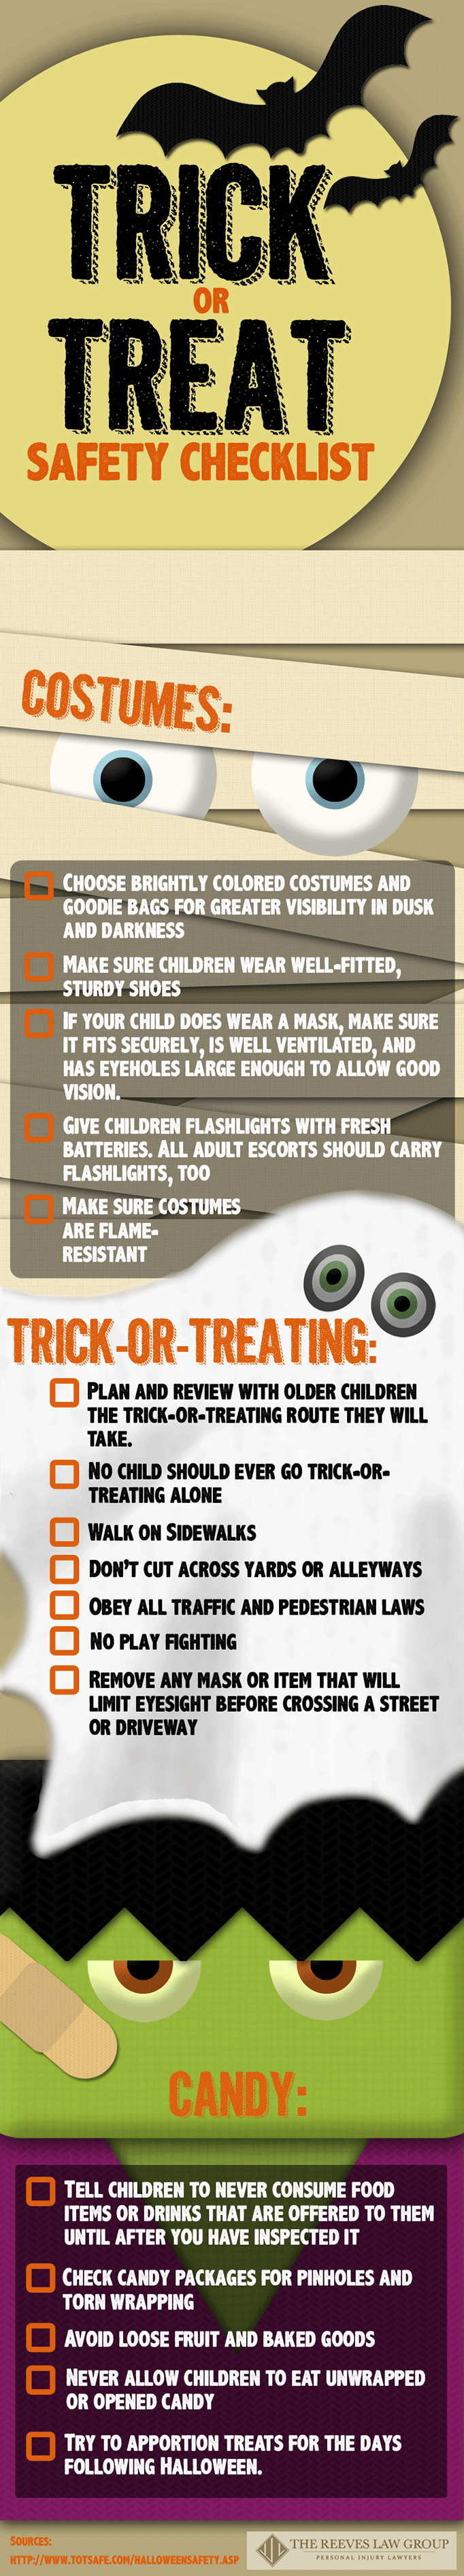 trick or treat safety info